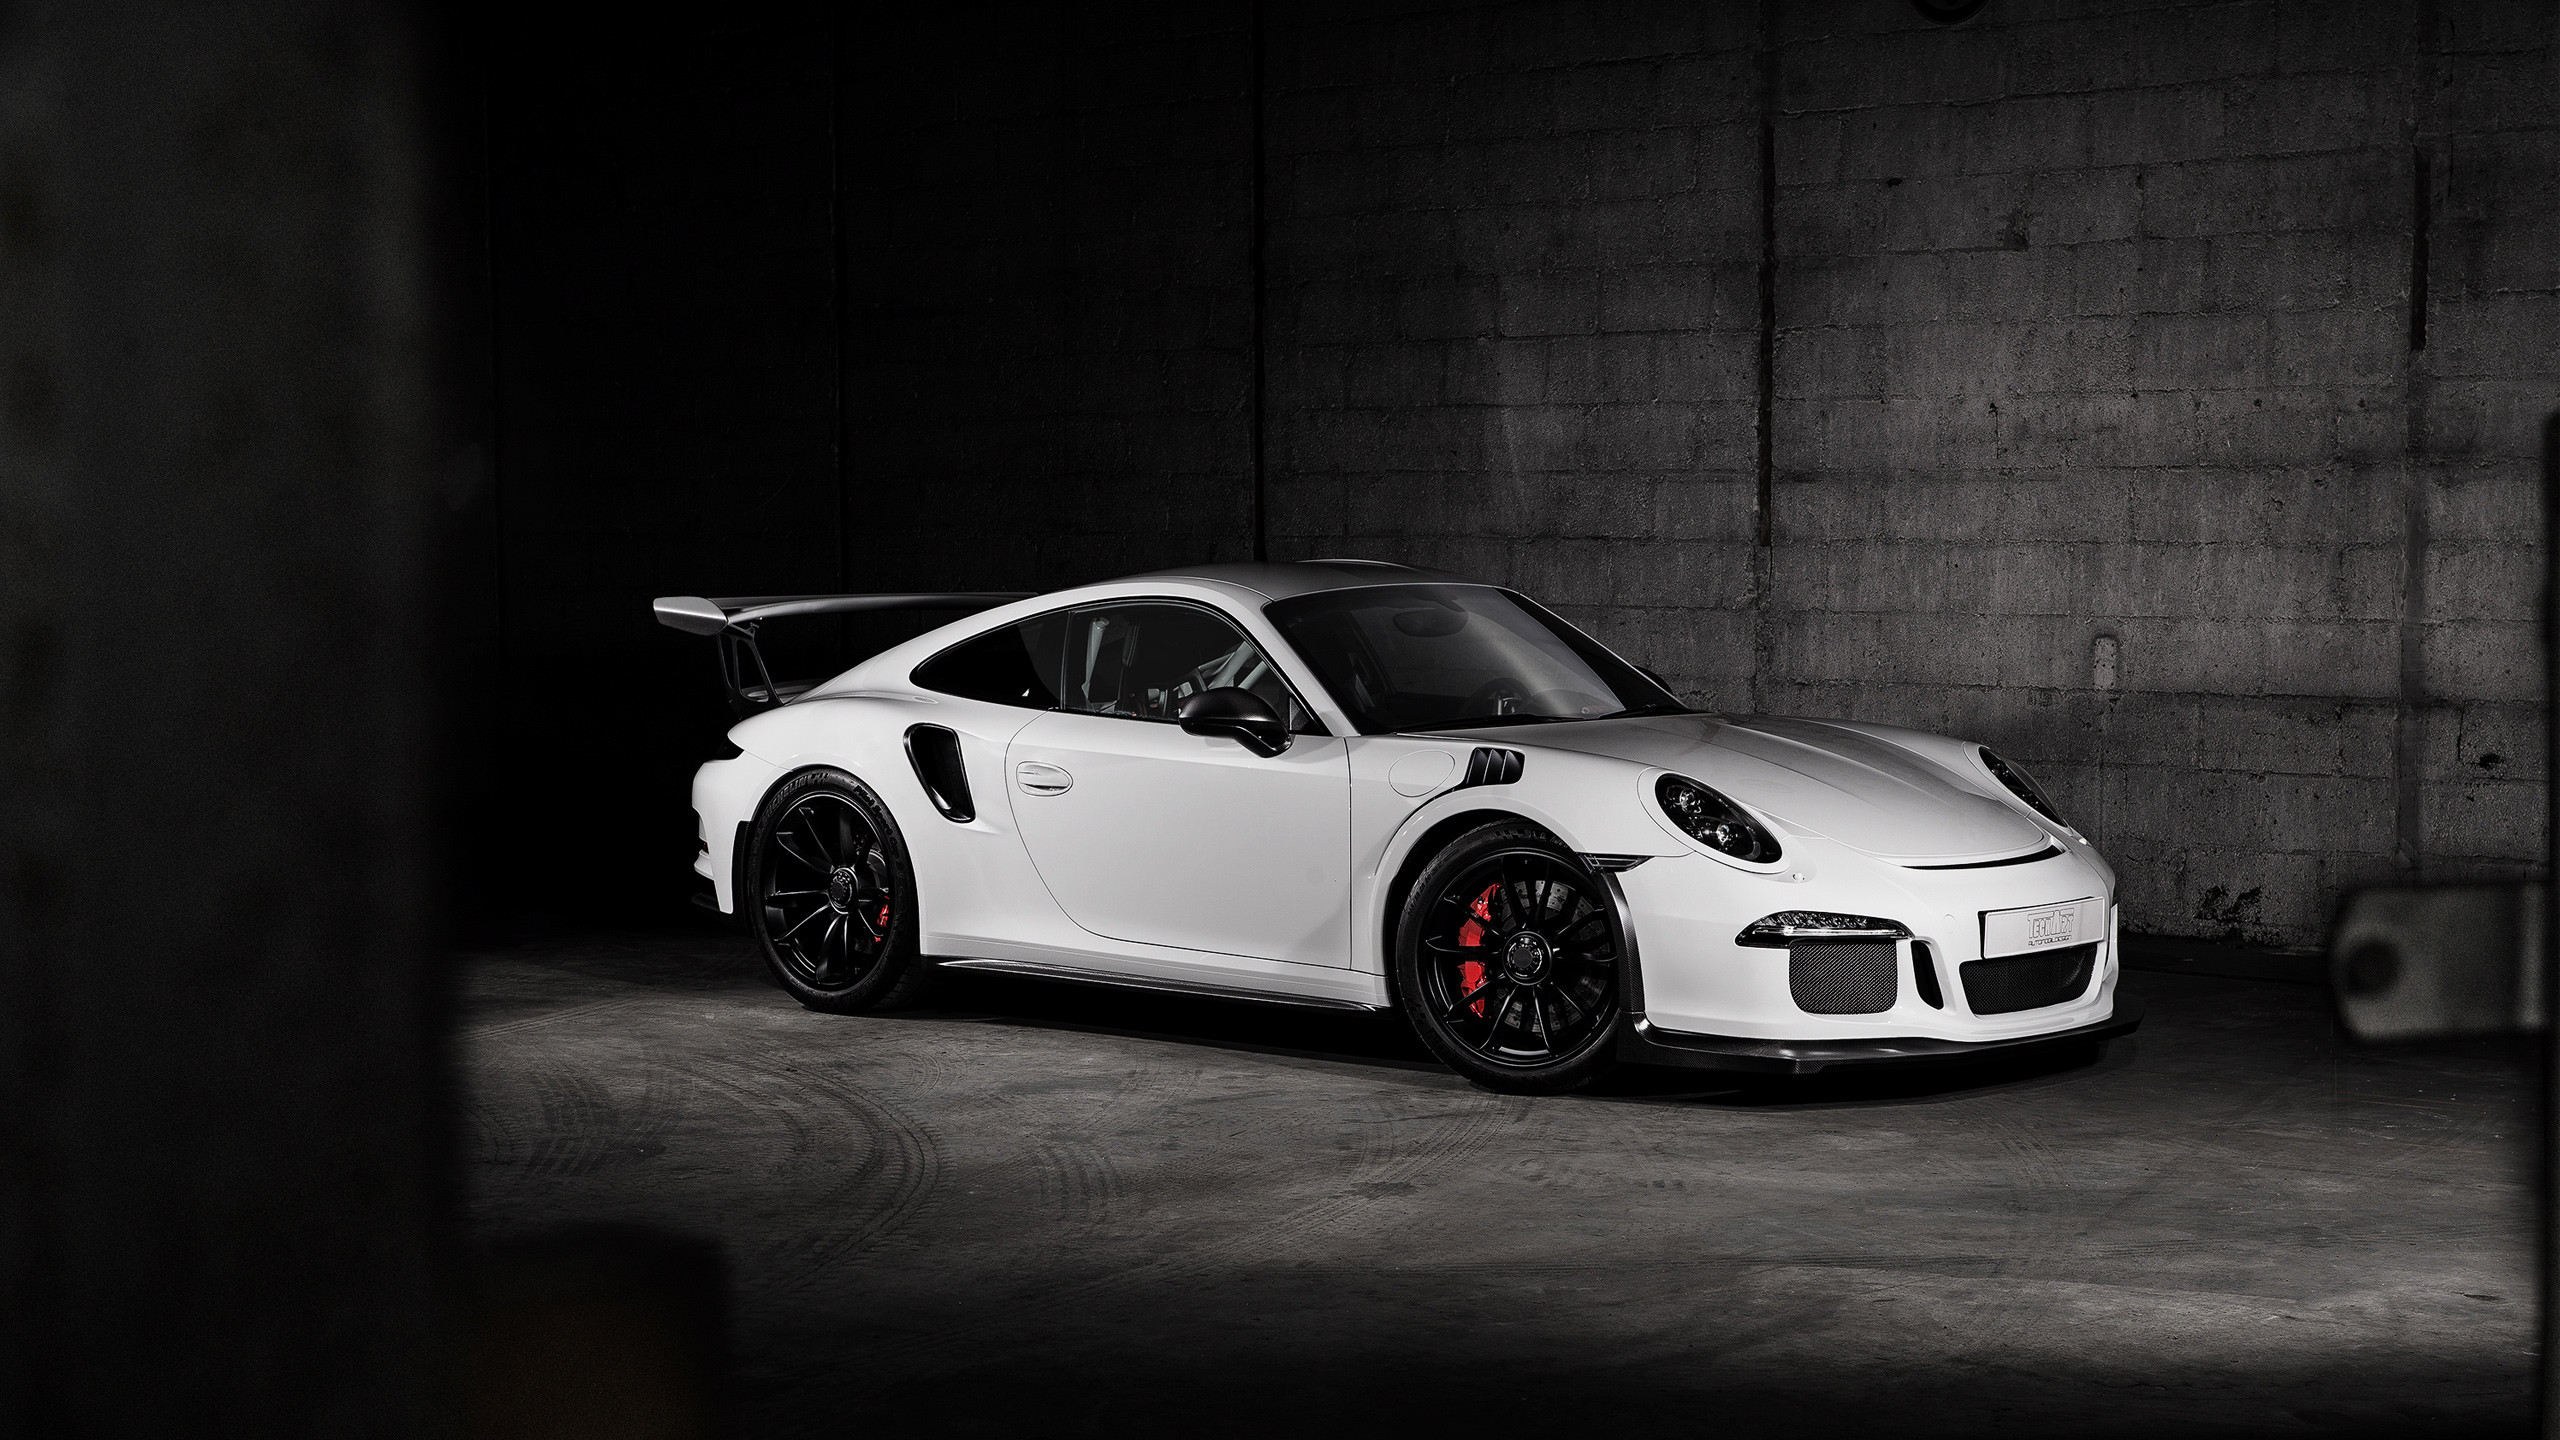 2016 Porsche 911 Gt3 Rs Carbon Techart   Data Src Cool - Porsche Gt3 Rs Hd - HD Wallpaper